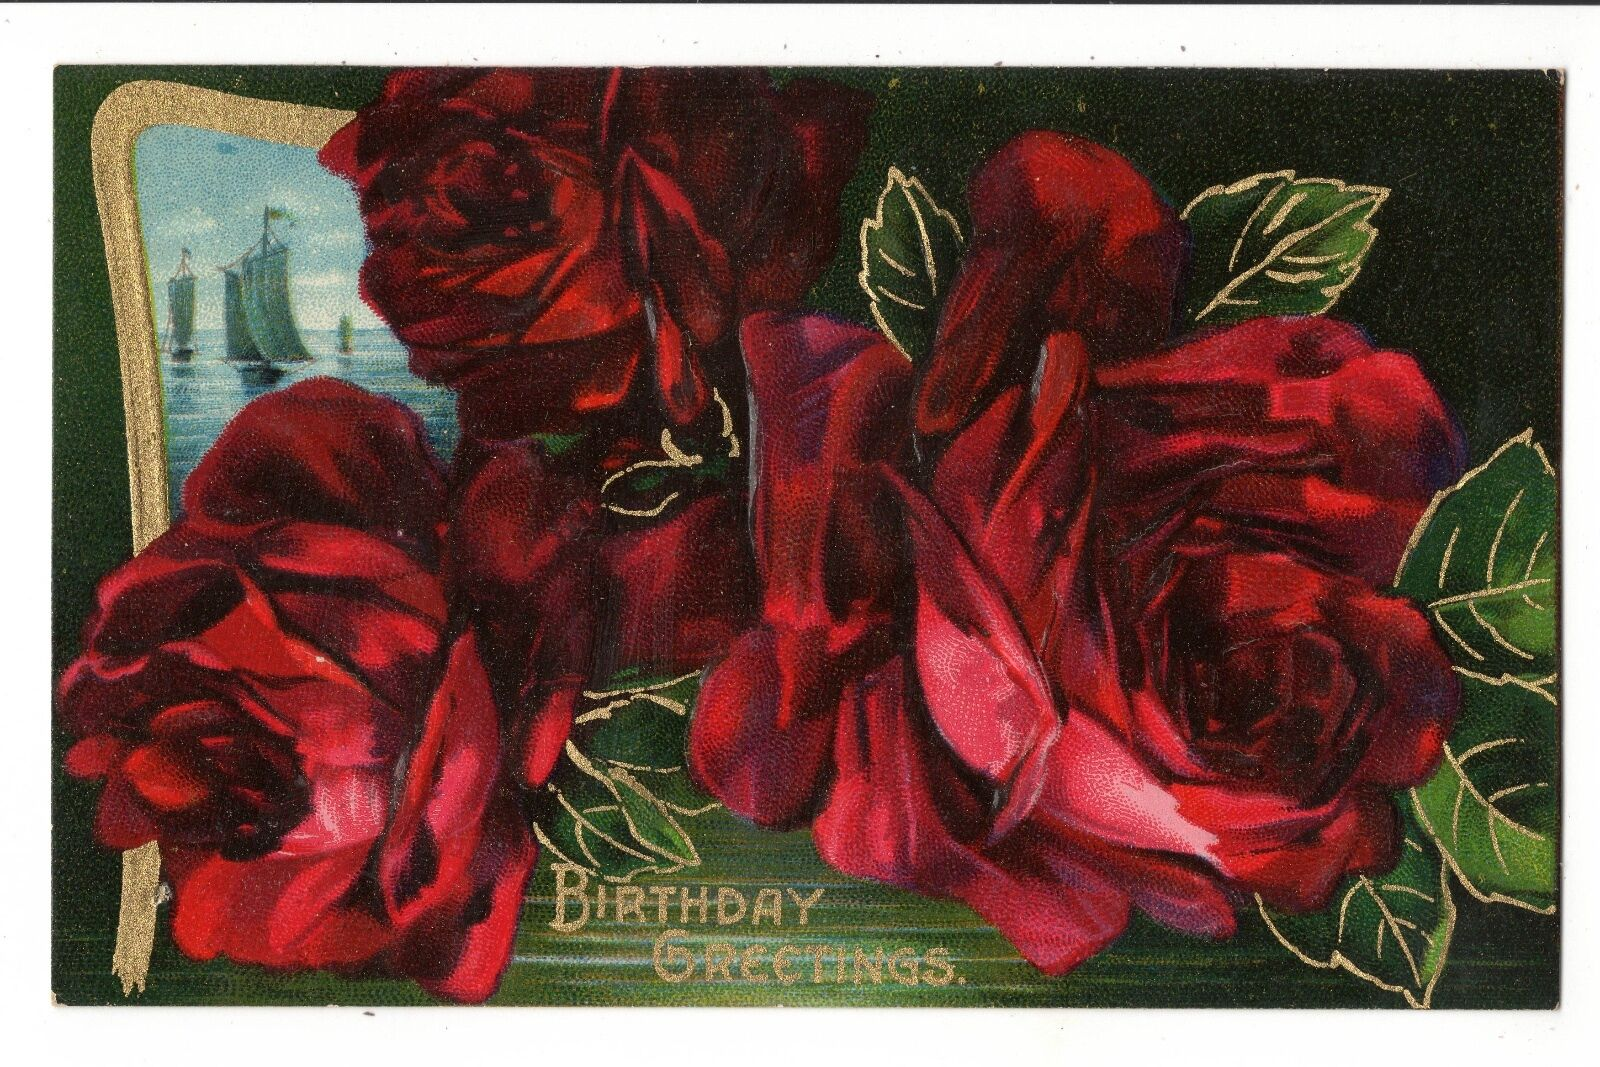 Vintage Postcard Birthday Greetings Embossed Red Roses Sailboat Gold